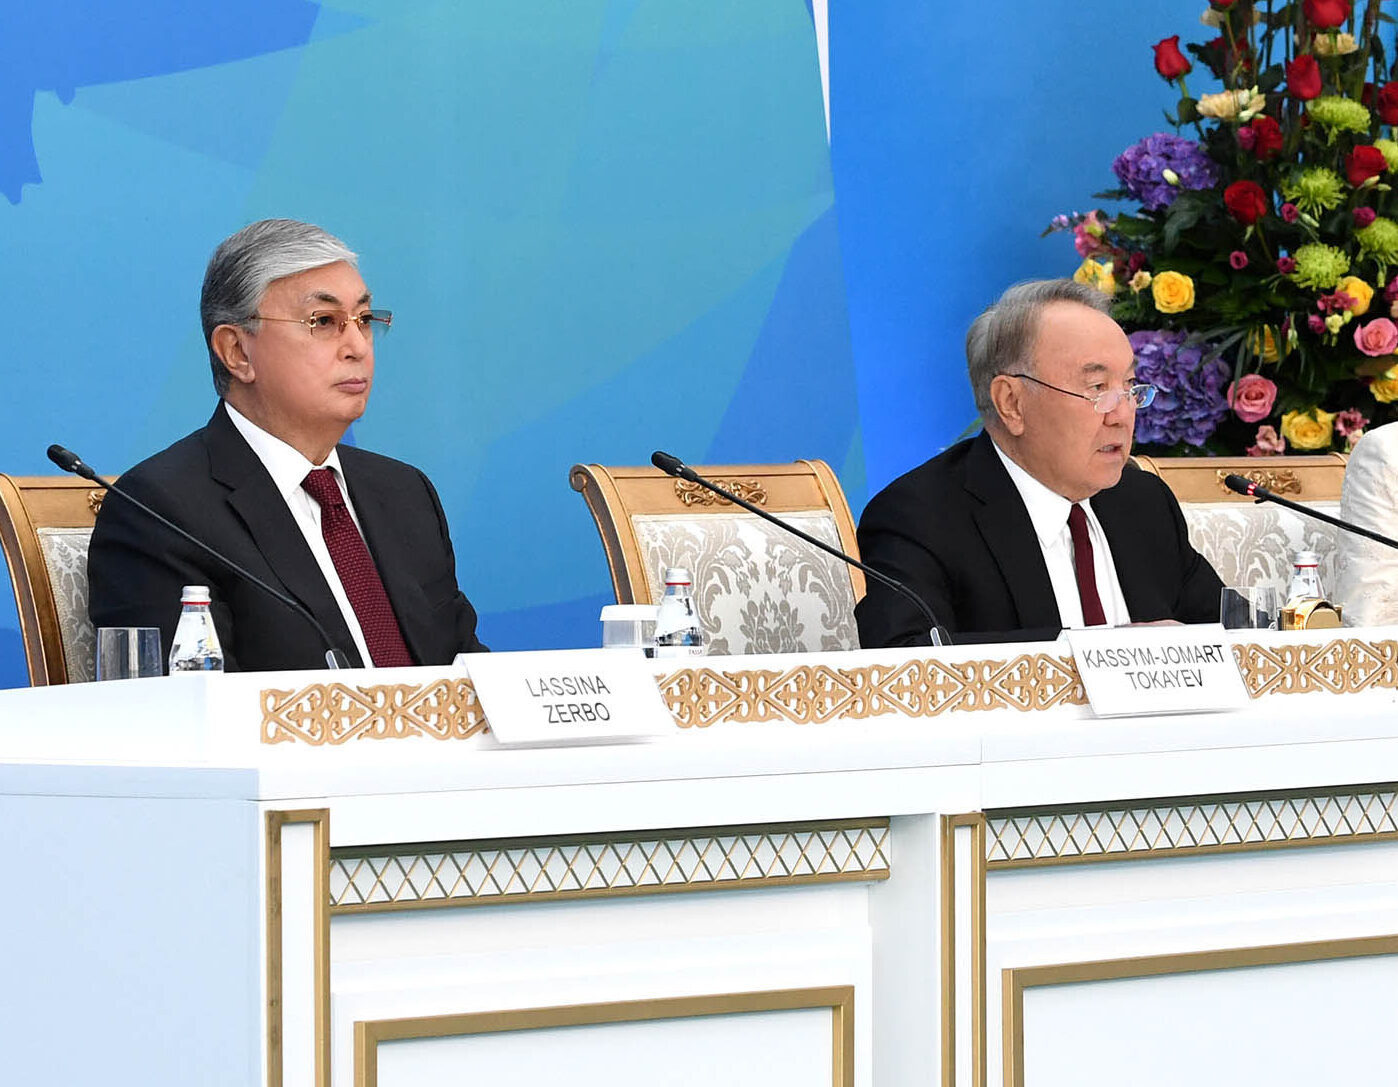 e788a04071637c7de86d8ce7163d24e6 e1567072549693 - Tokayev will maintain the continuity of the course of Nazarbayev expert